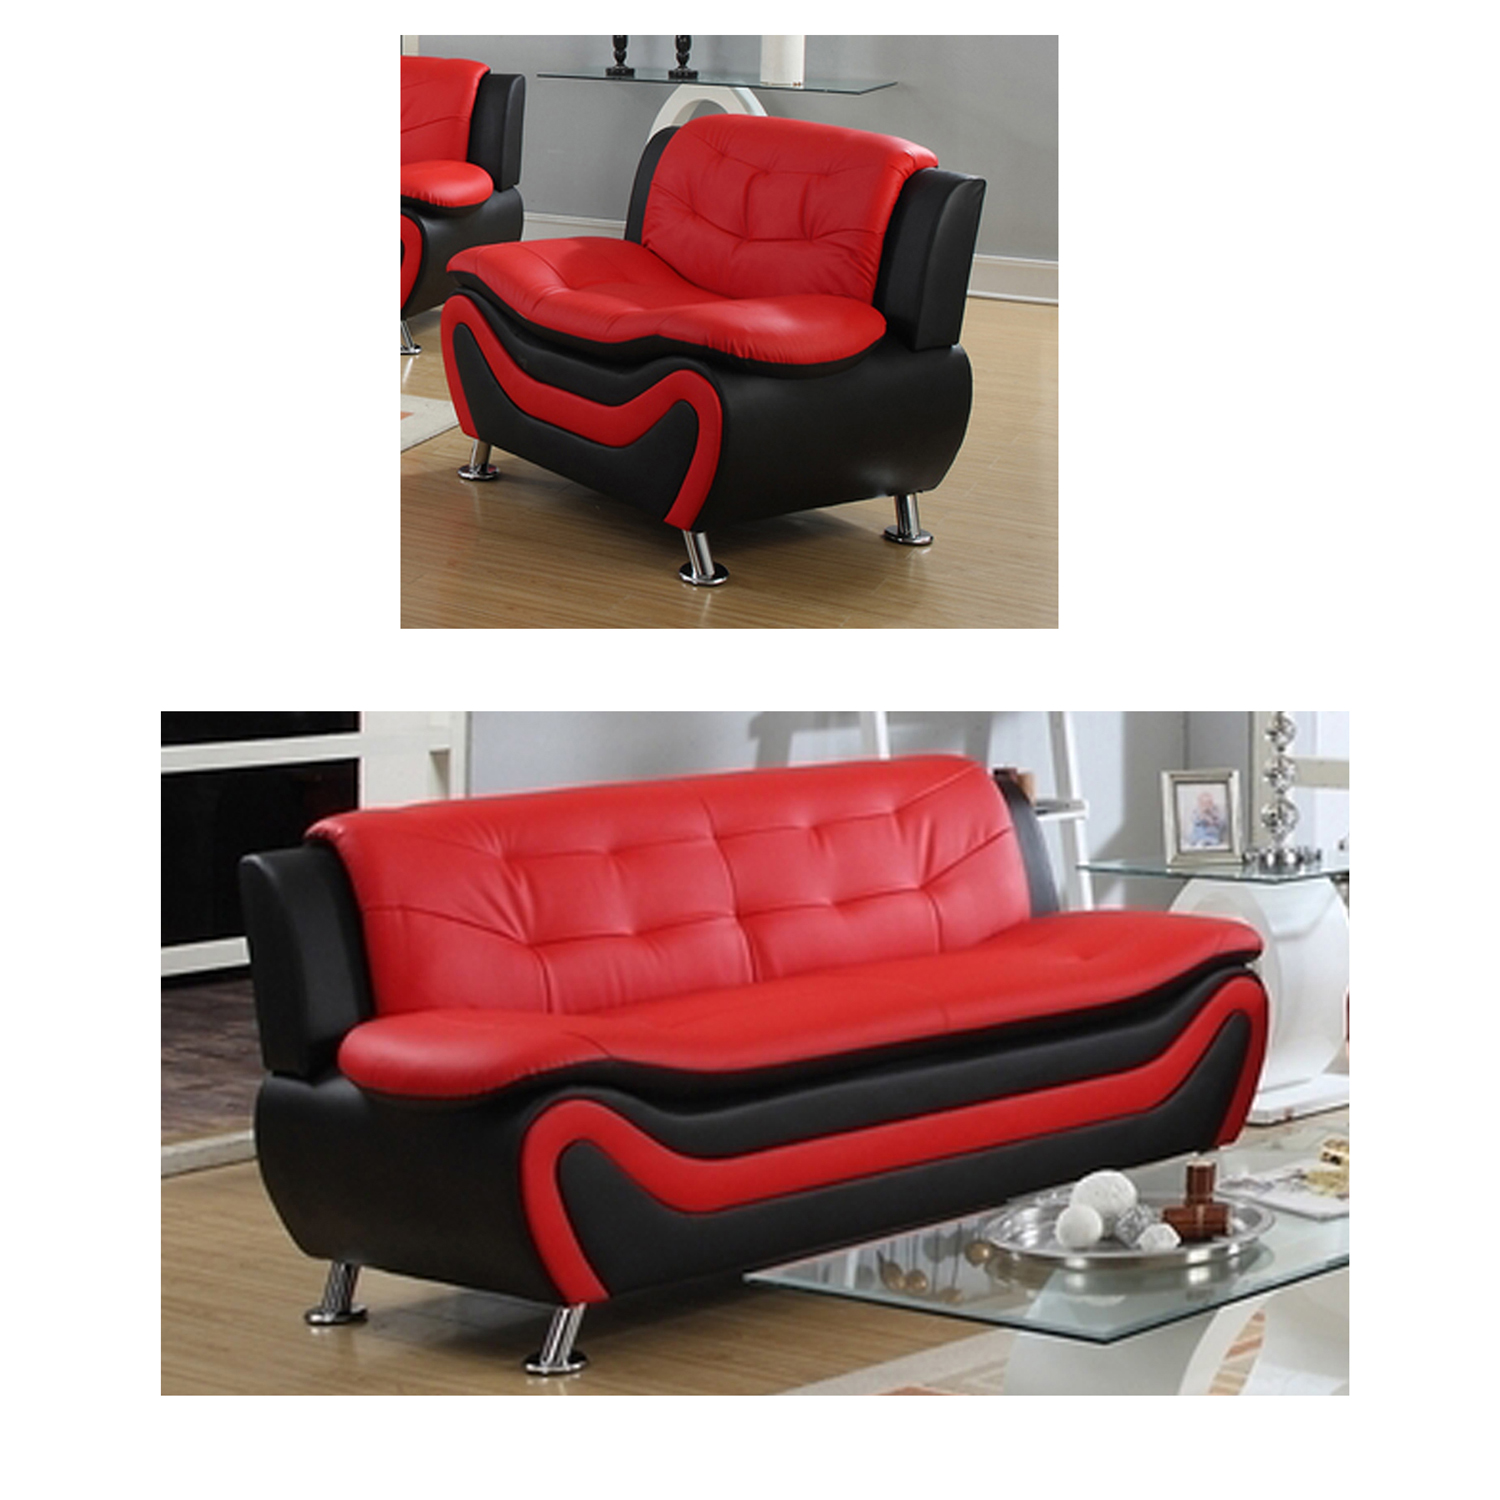 Frady Black and Red Faux Leather Modern Living Room Sofa and Chair Set